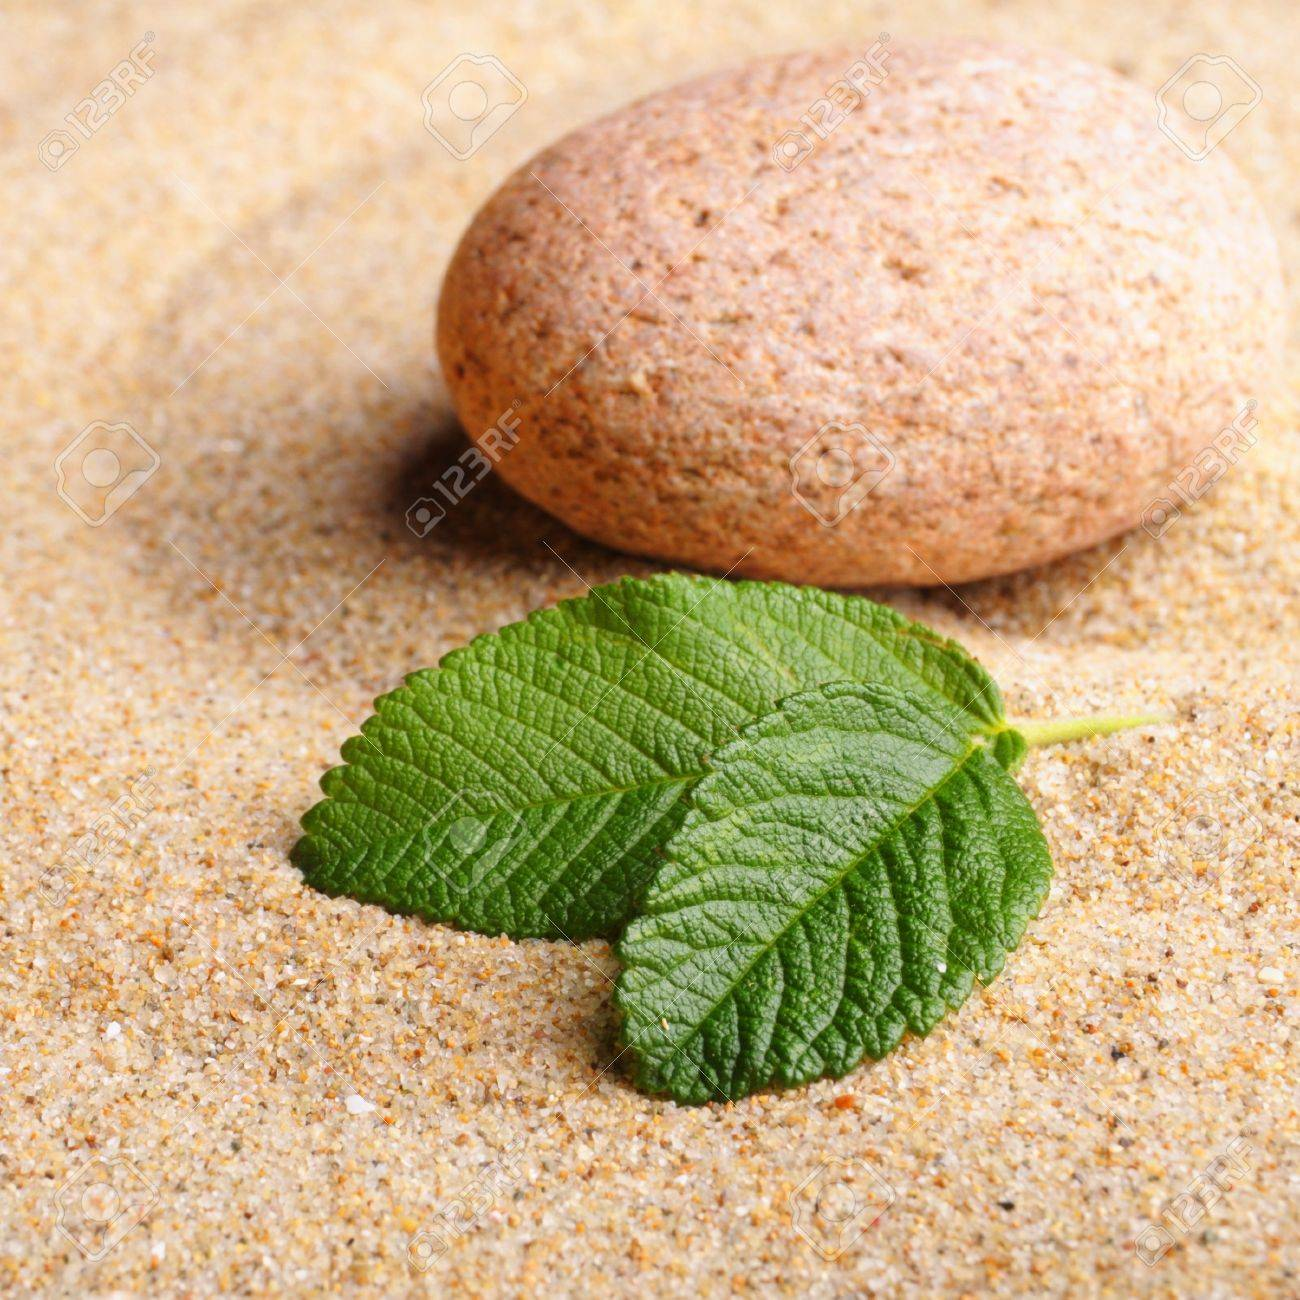 zen garden with stone or pebble on sand with leaf Stock Photo - 7723708